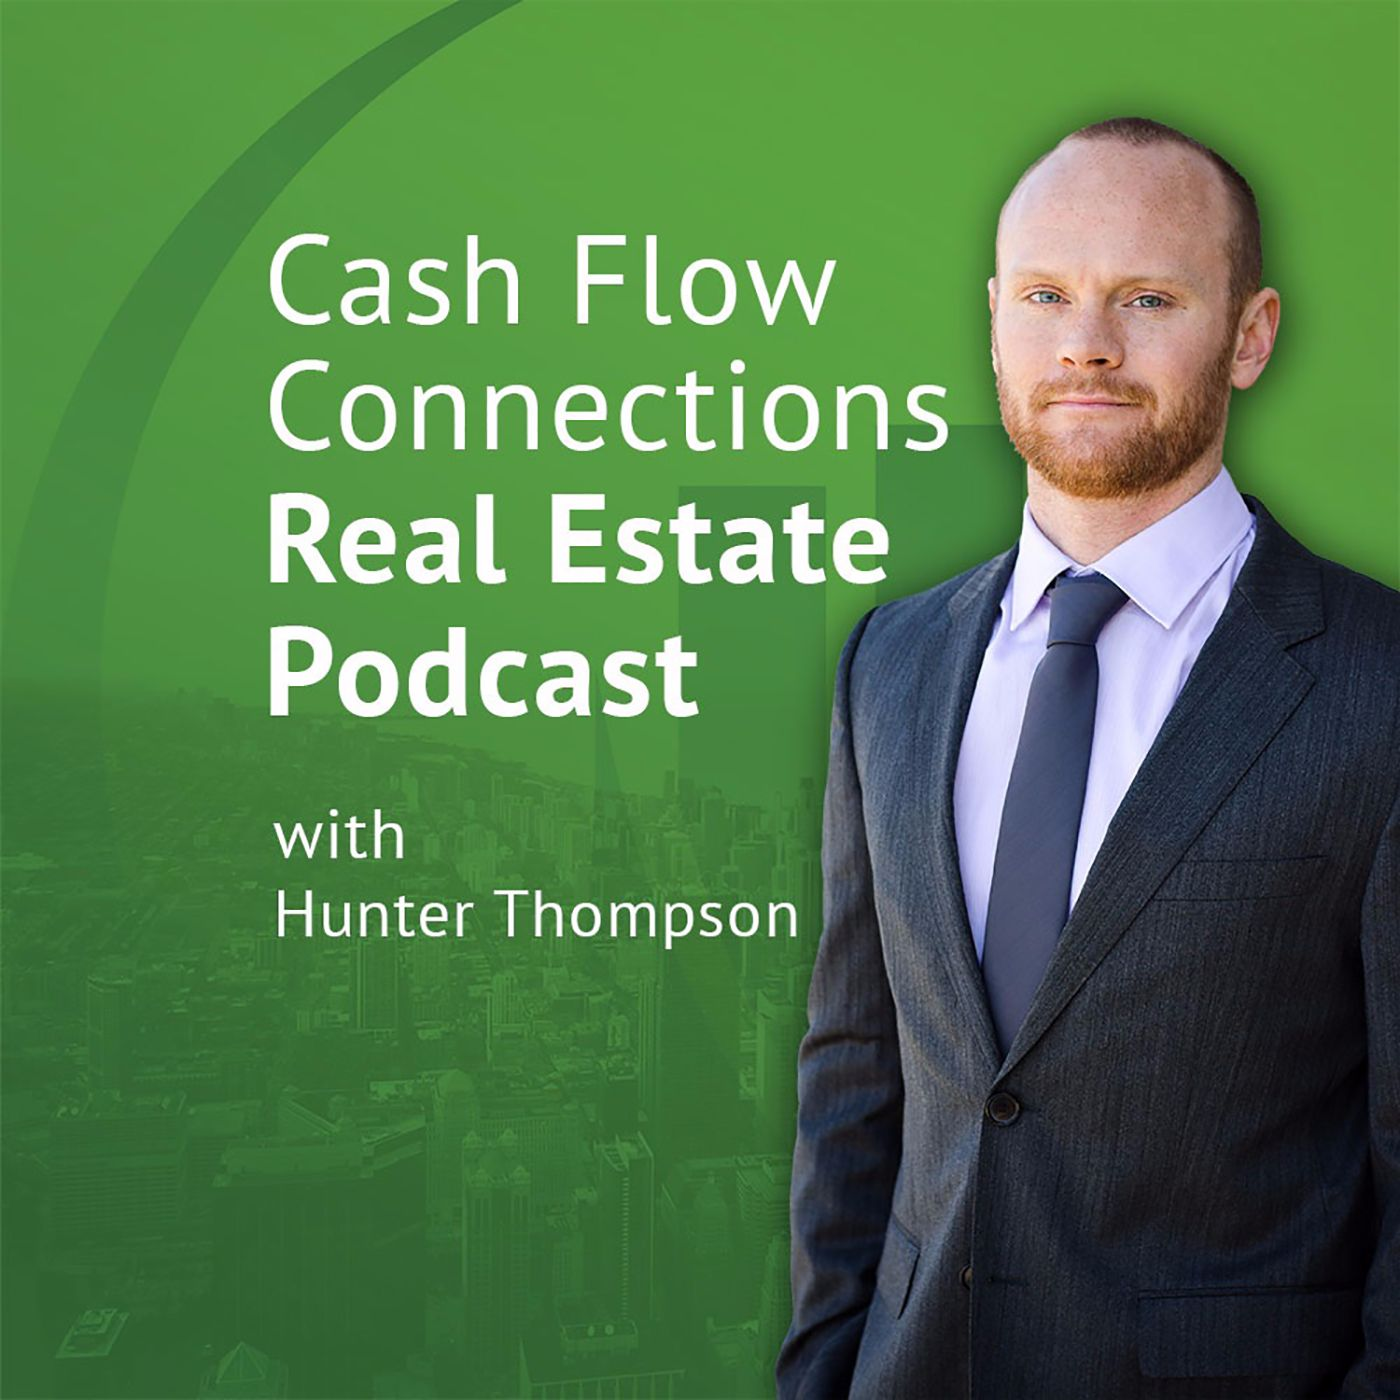 E157 - Conducting Passive CRE Due Diligence with Jeremy Roll show art